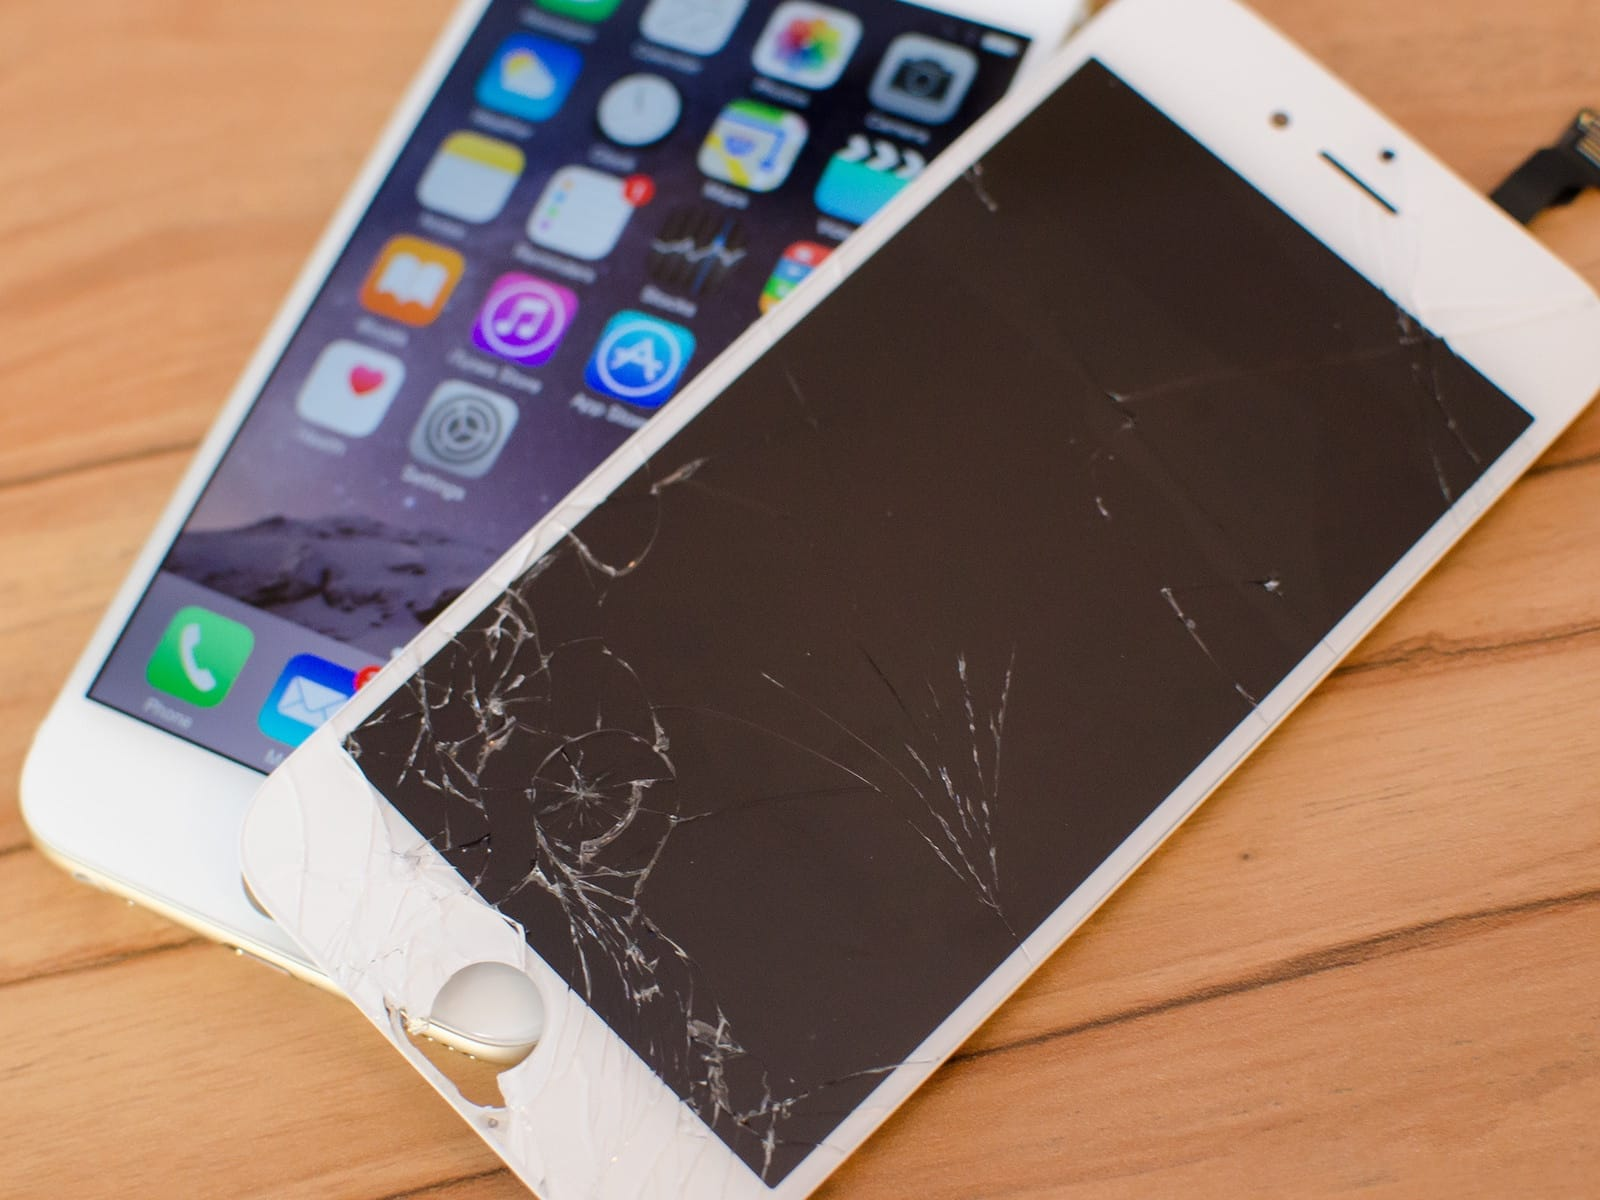 How to Retrieve Data from Broken Android Phone